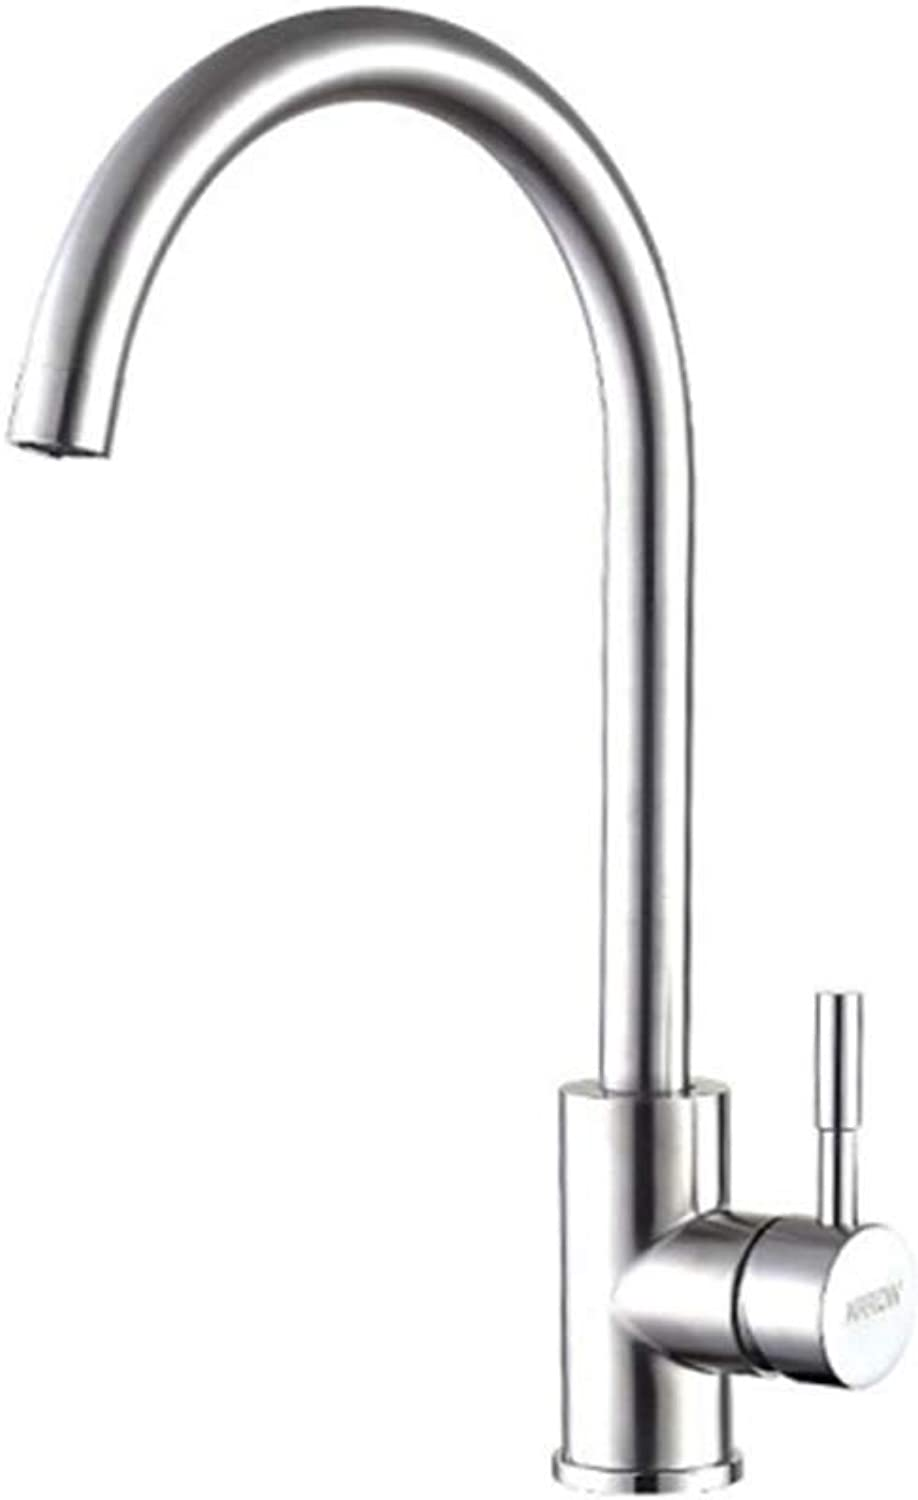 Kitchen Faucet wash Basin hot and Cold Water Faucet can redate The Faucet Faucet Faucet Faucet.